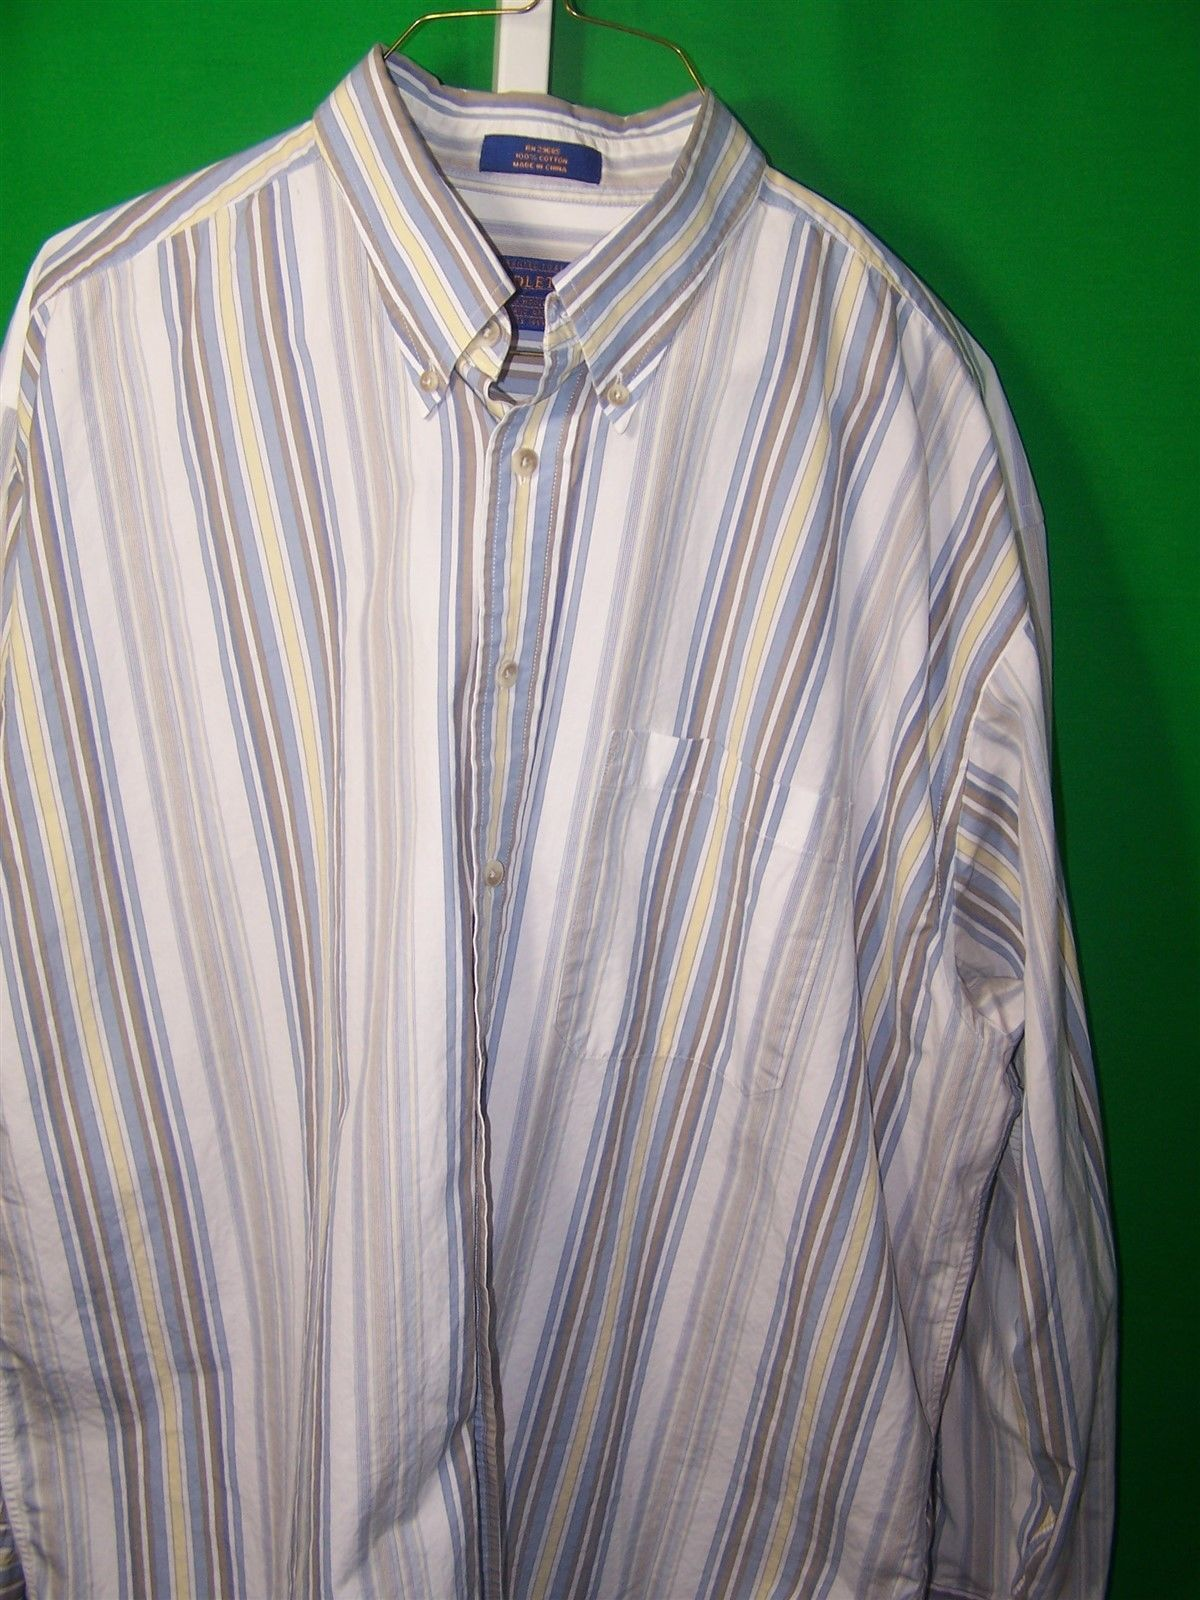 Pendleton m xl ls striped cotton shirt button down collar for Three button collar shirts